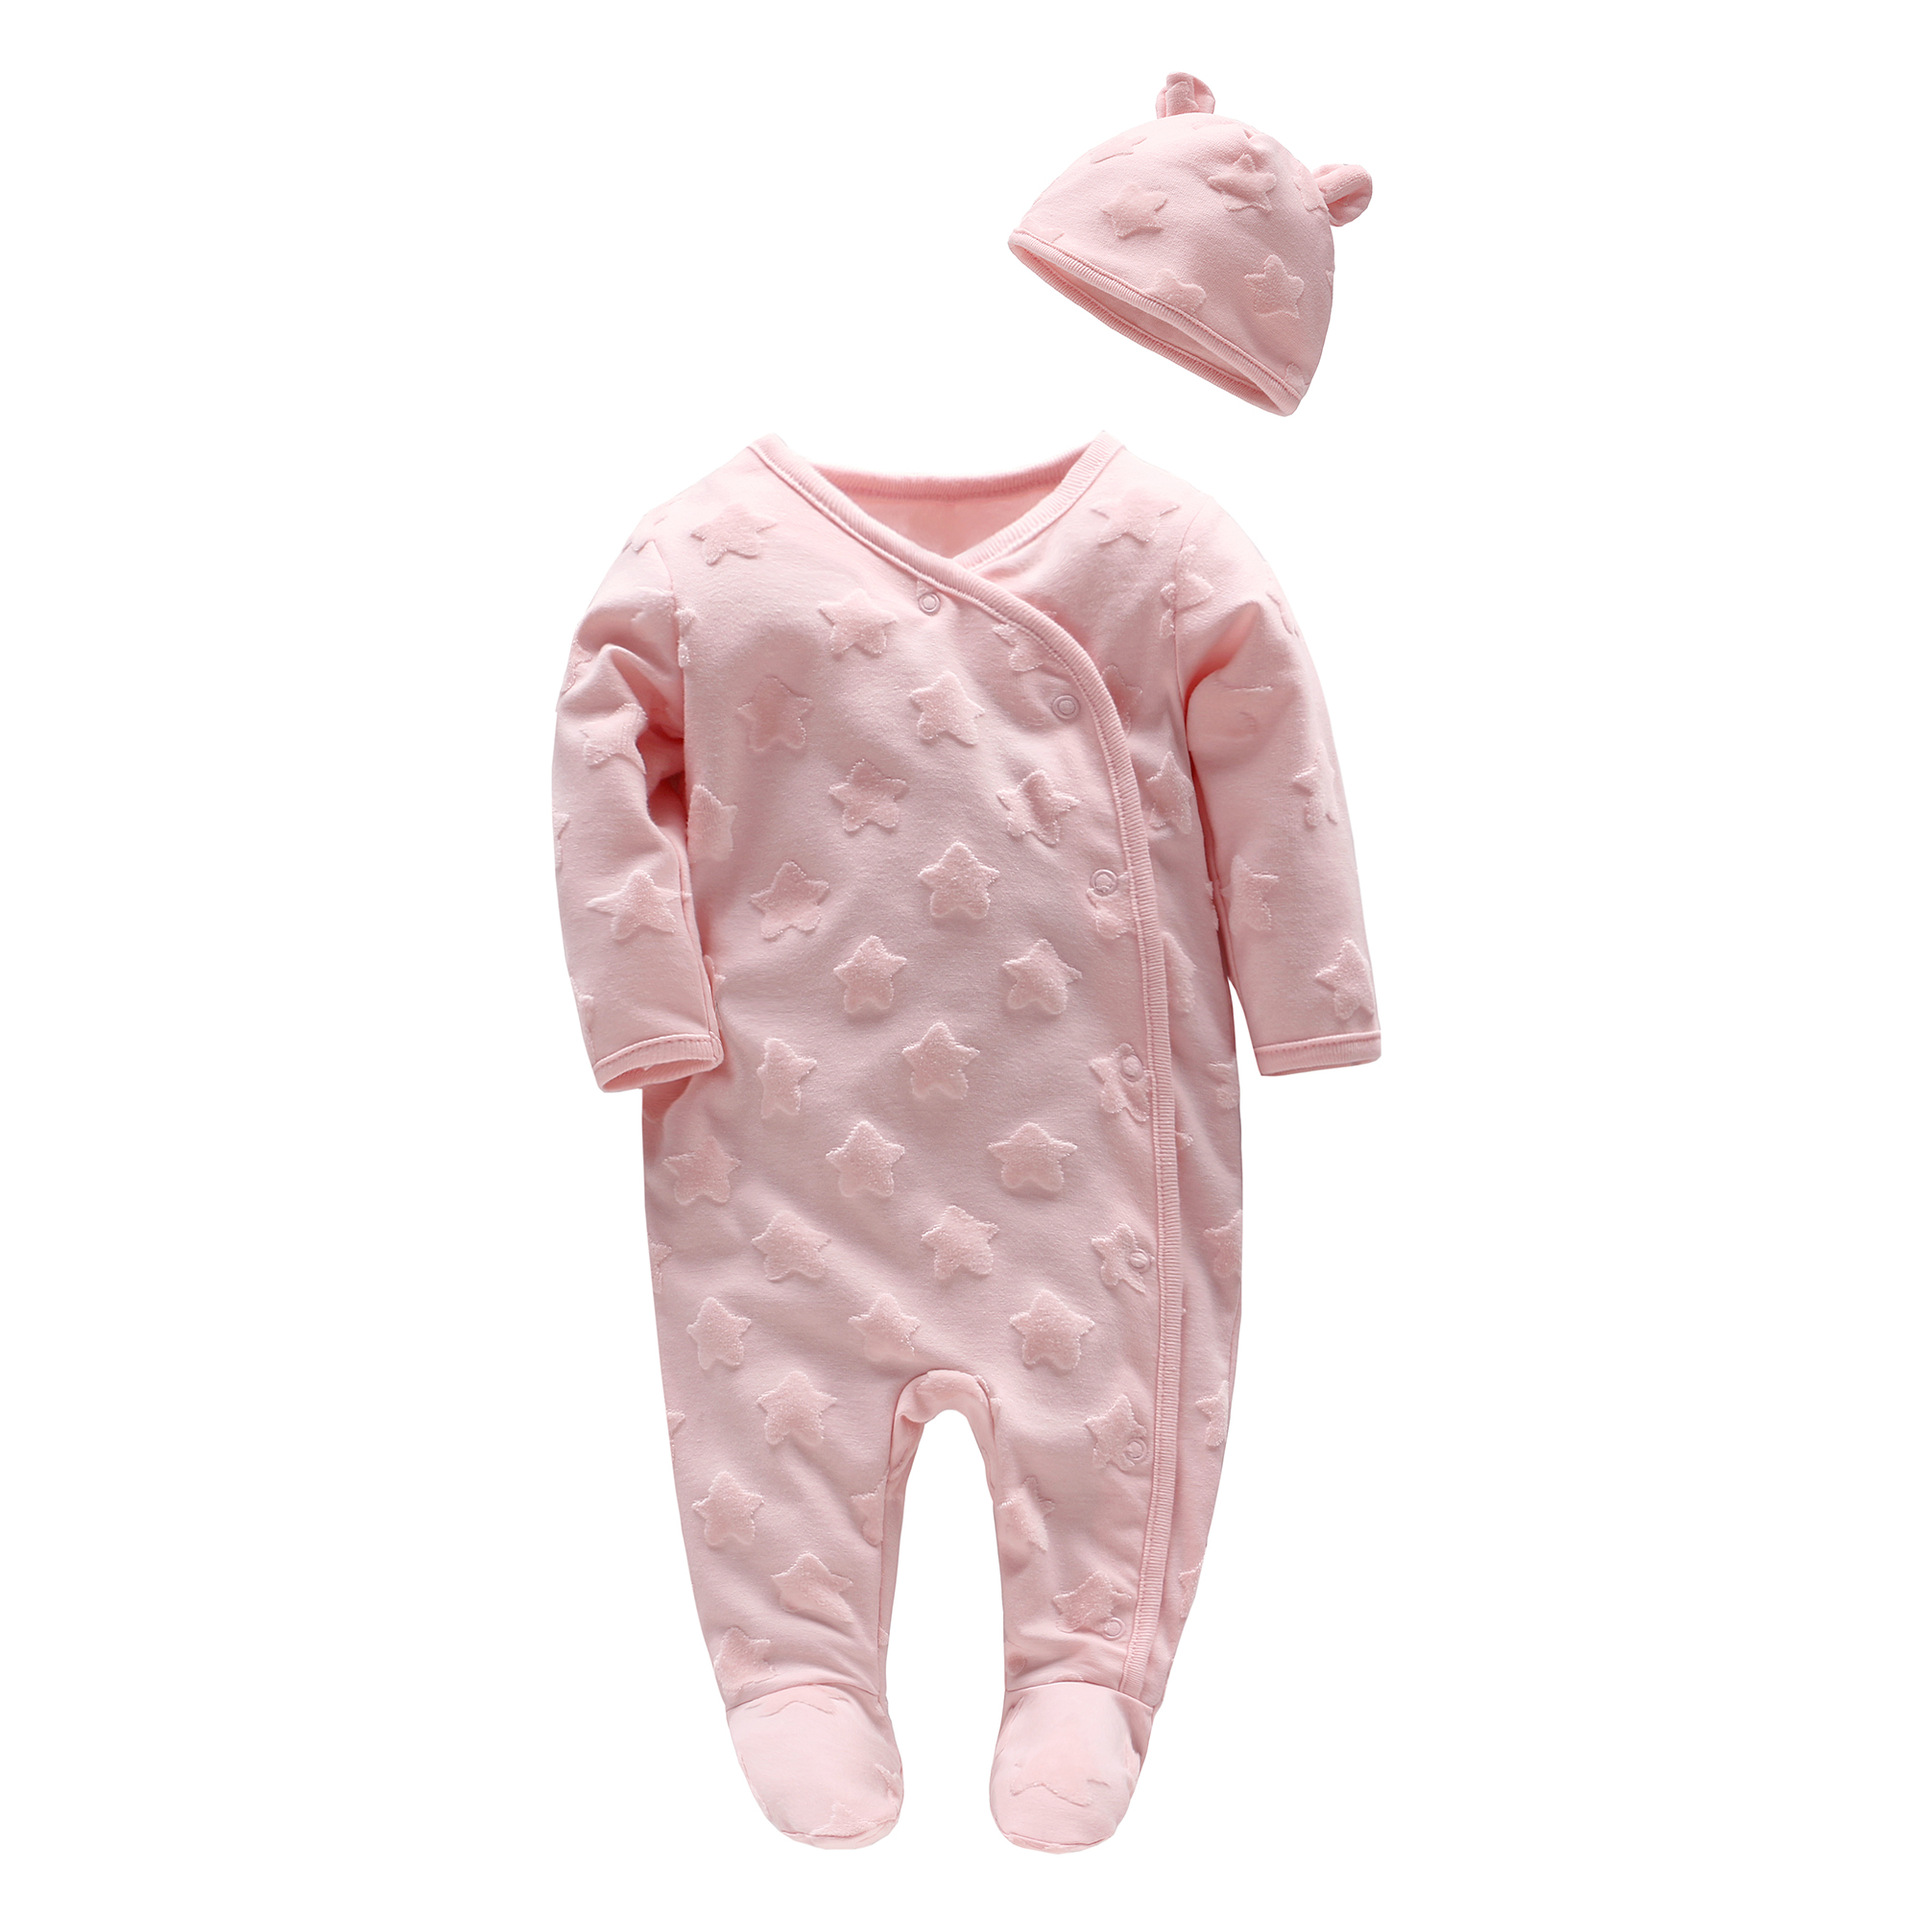 2018 Baby Girl Clothes Set Newborn Baby 2pcs Sets Star Soft Velvet Romper With Hat Babies Solid Pink Wedding Suits Newborn Gift promotion 6pcs baby bedding set cot crib bedding set baby bed baby cot sets include 4bumpers sheet pillow